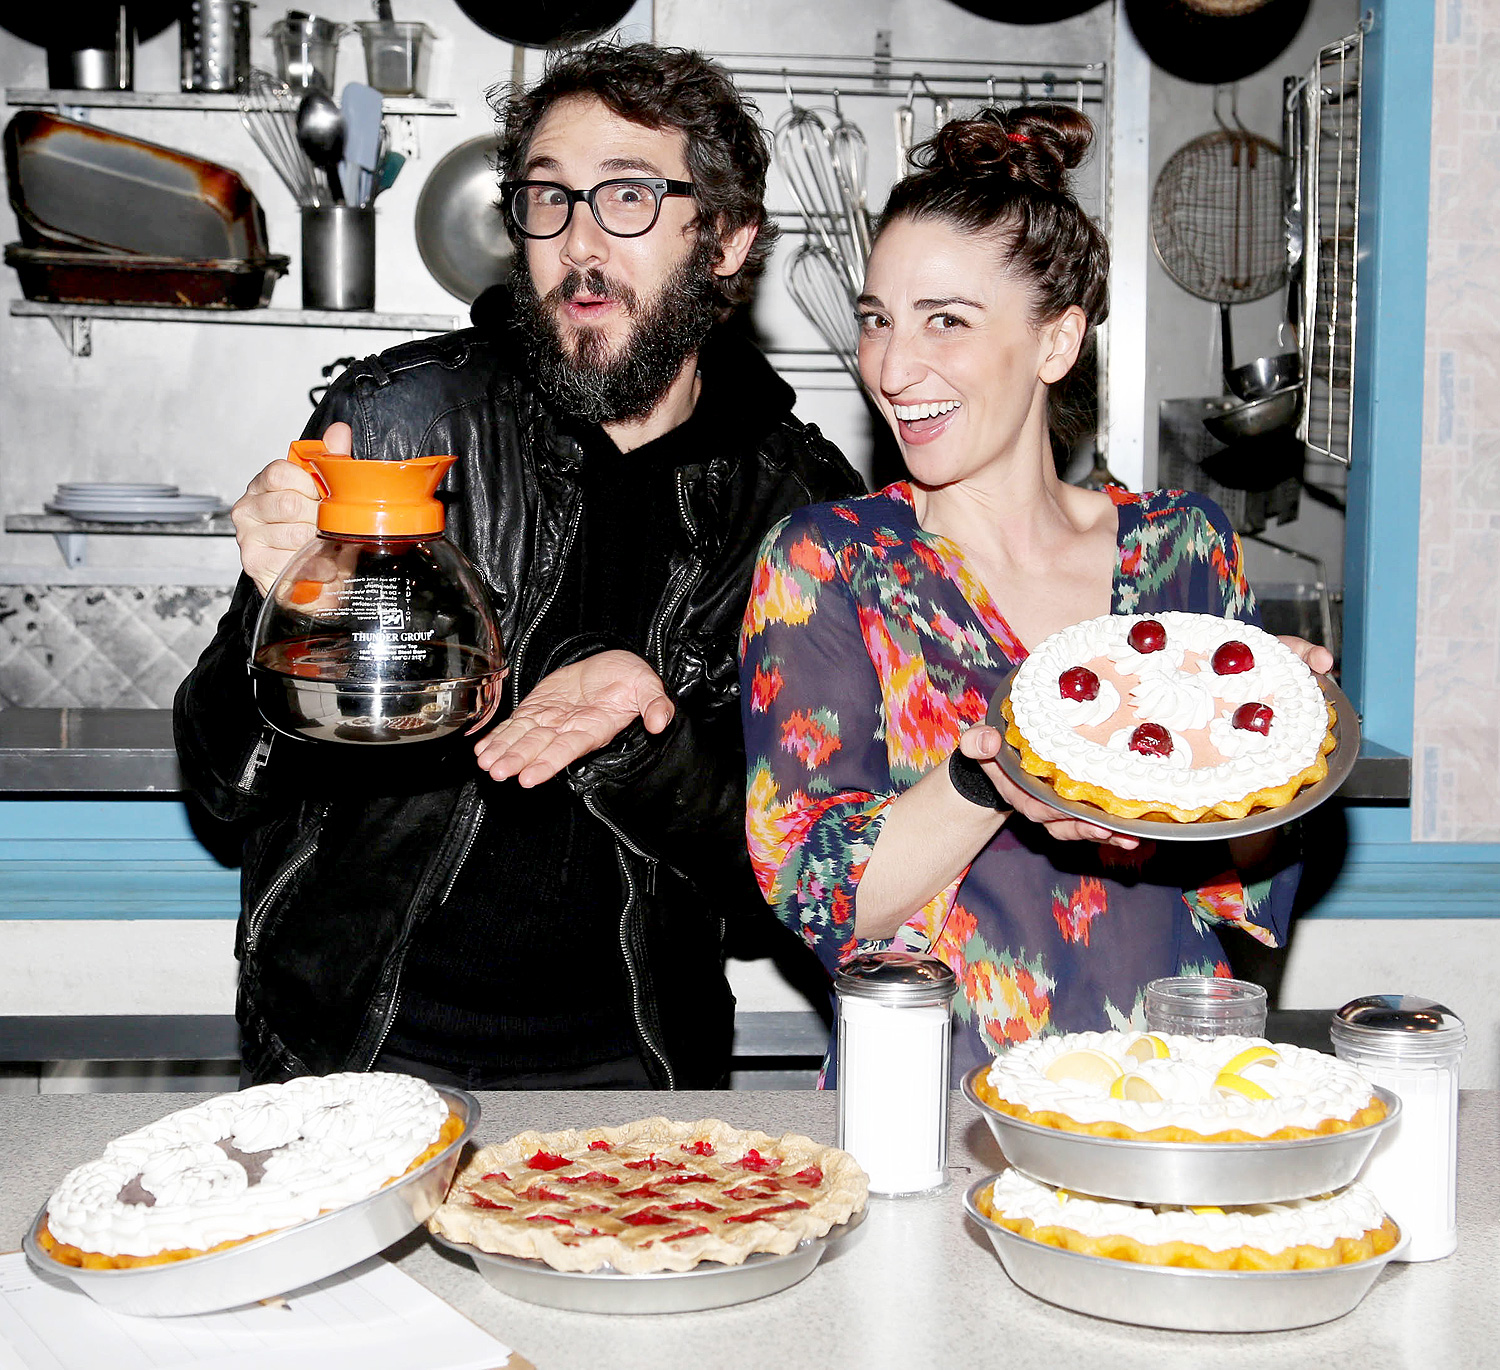 Josh Groban Visits Sara Bareilles Backstage at the Broadway Musical Waitress